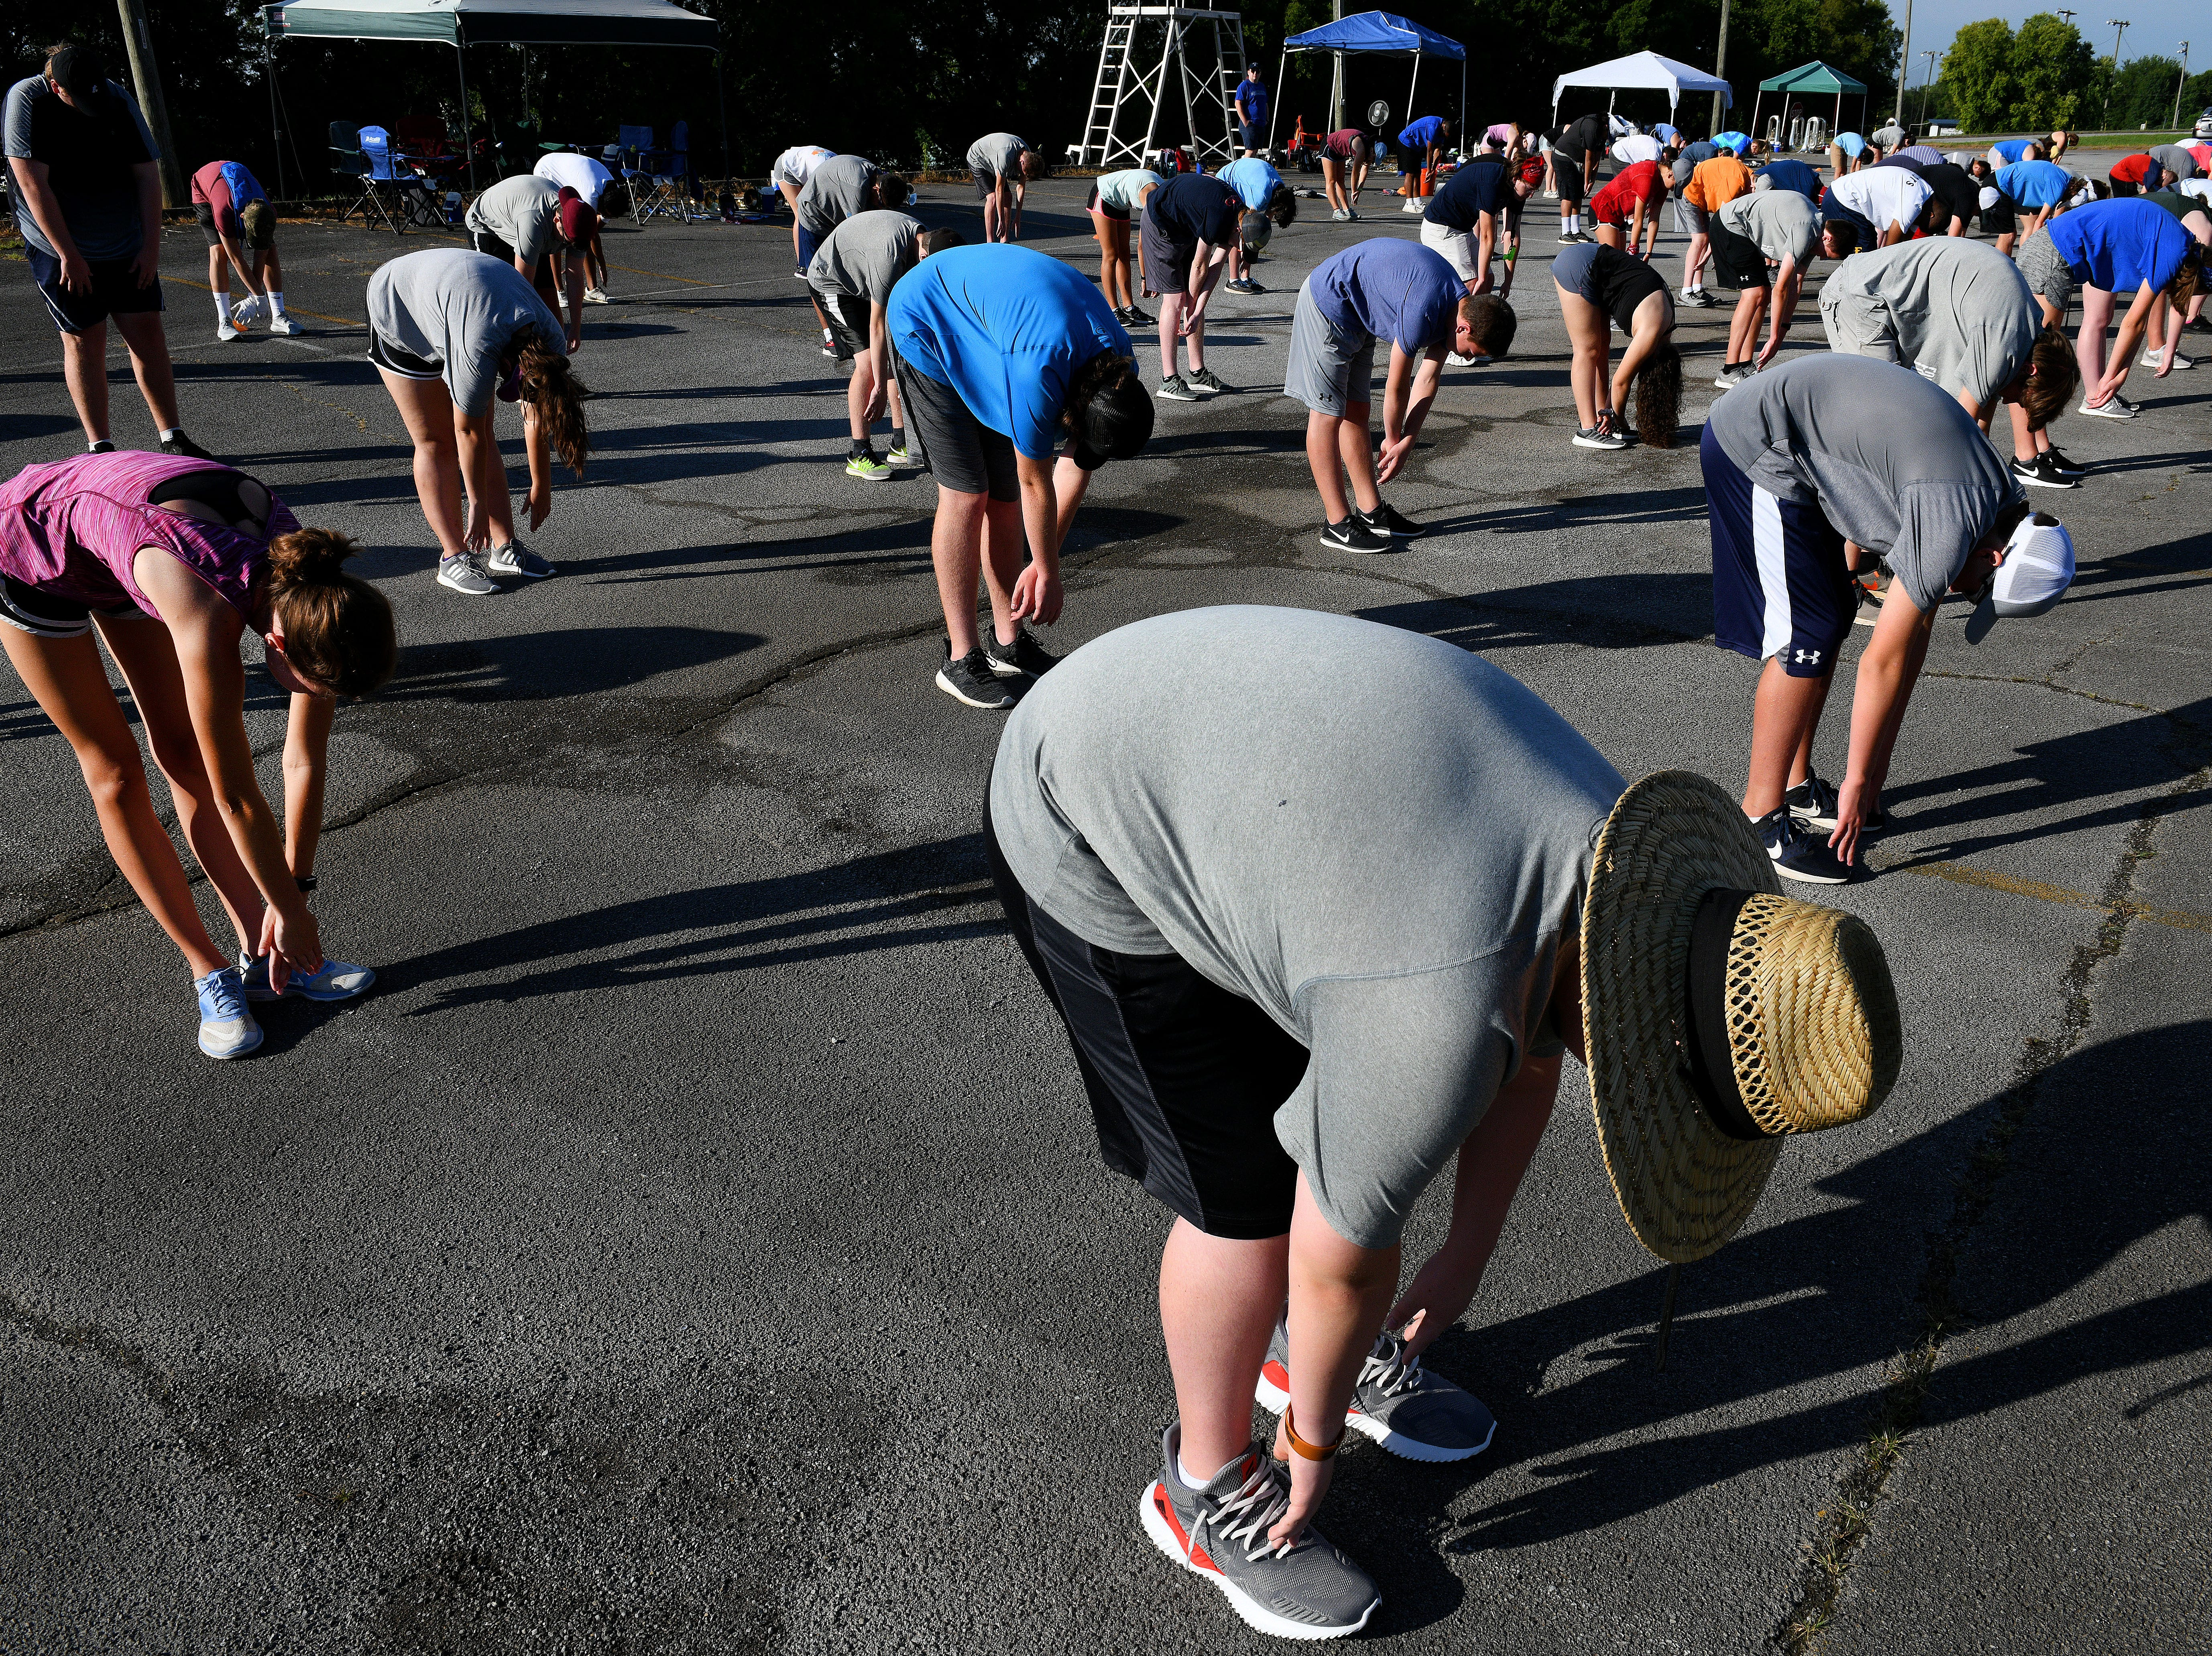 Stretching to start the day at Farragut High School band camp Wednesday, July 18, 2018 on a parking lot at the high school.